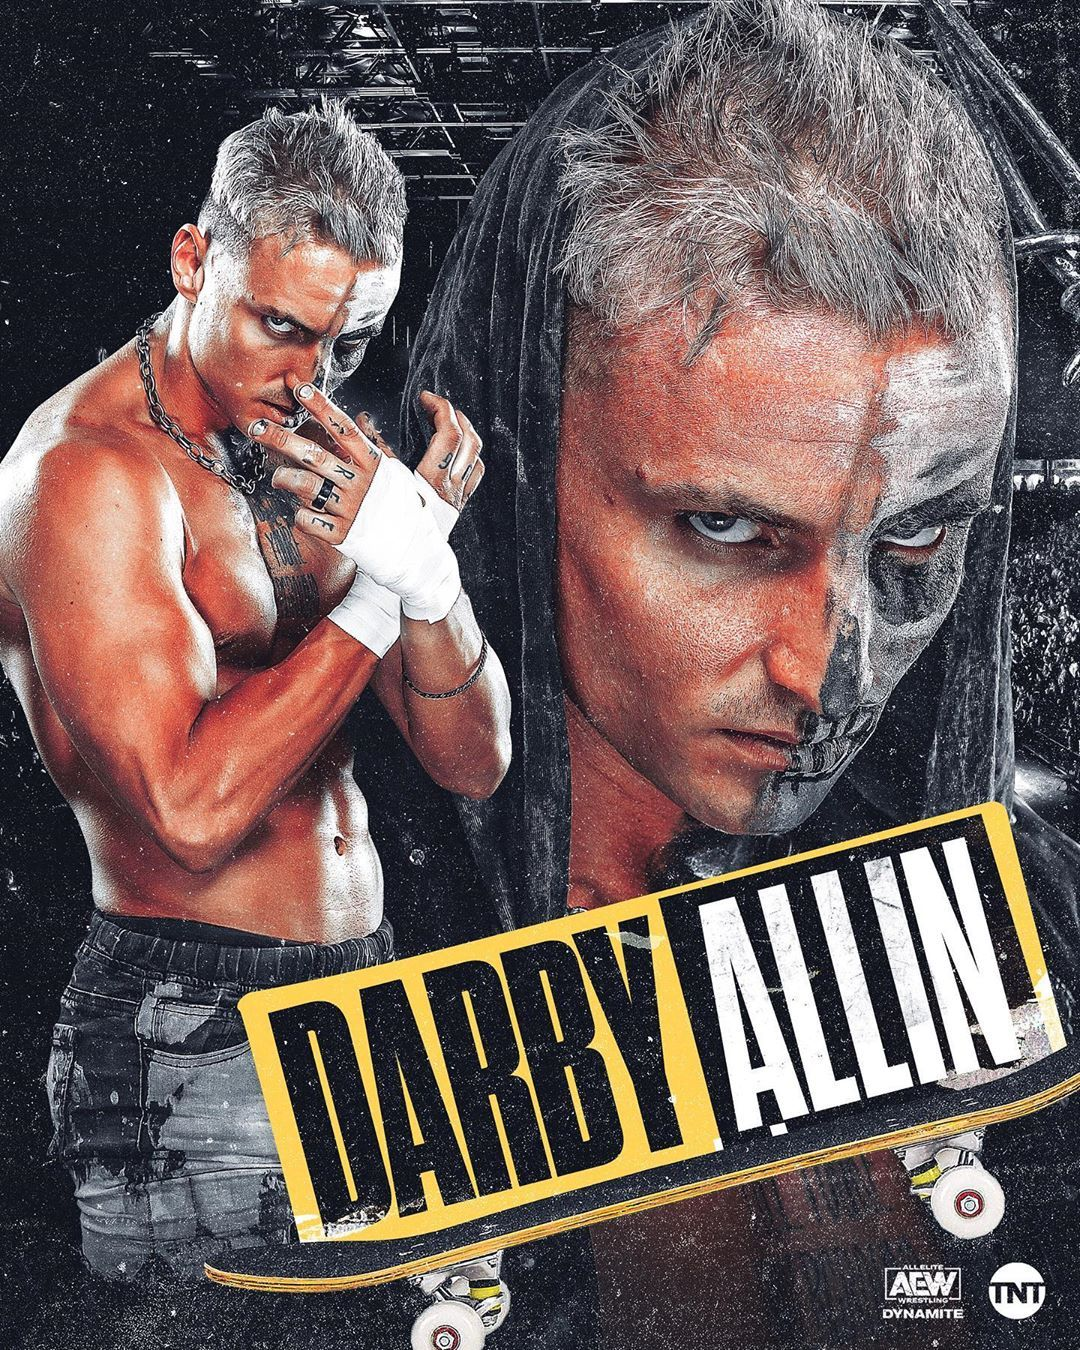 Aew On Tnt On Instagram 𝓡𝓮𝓵𝓮𝓷𝓽𝓵𝓮𝓼𝓼 Can Darbyallin Rise To The Challenge Tonight On Dynamite Wrestling Stars Wrestling Posters Pro Wrestling